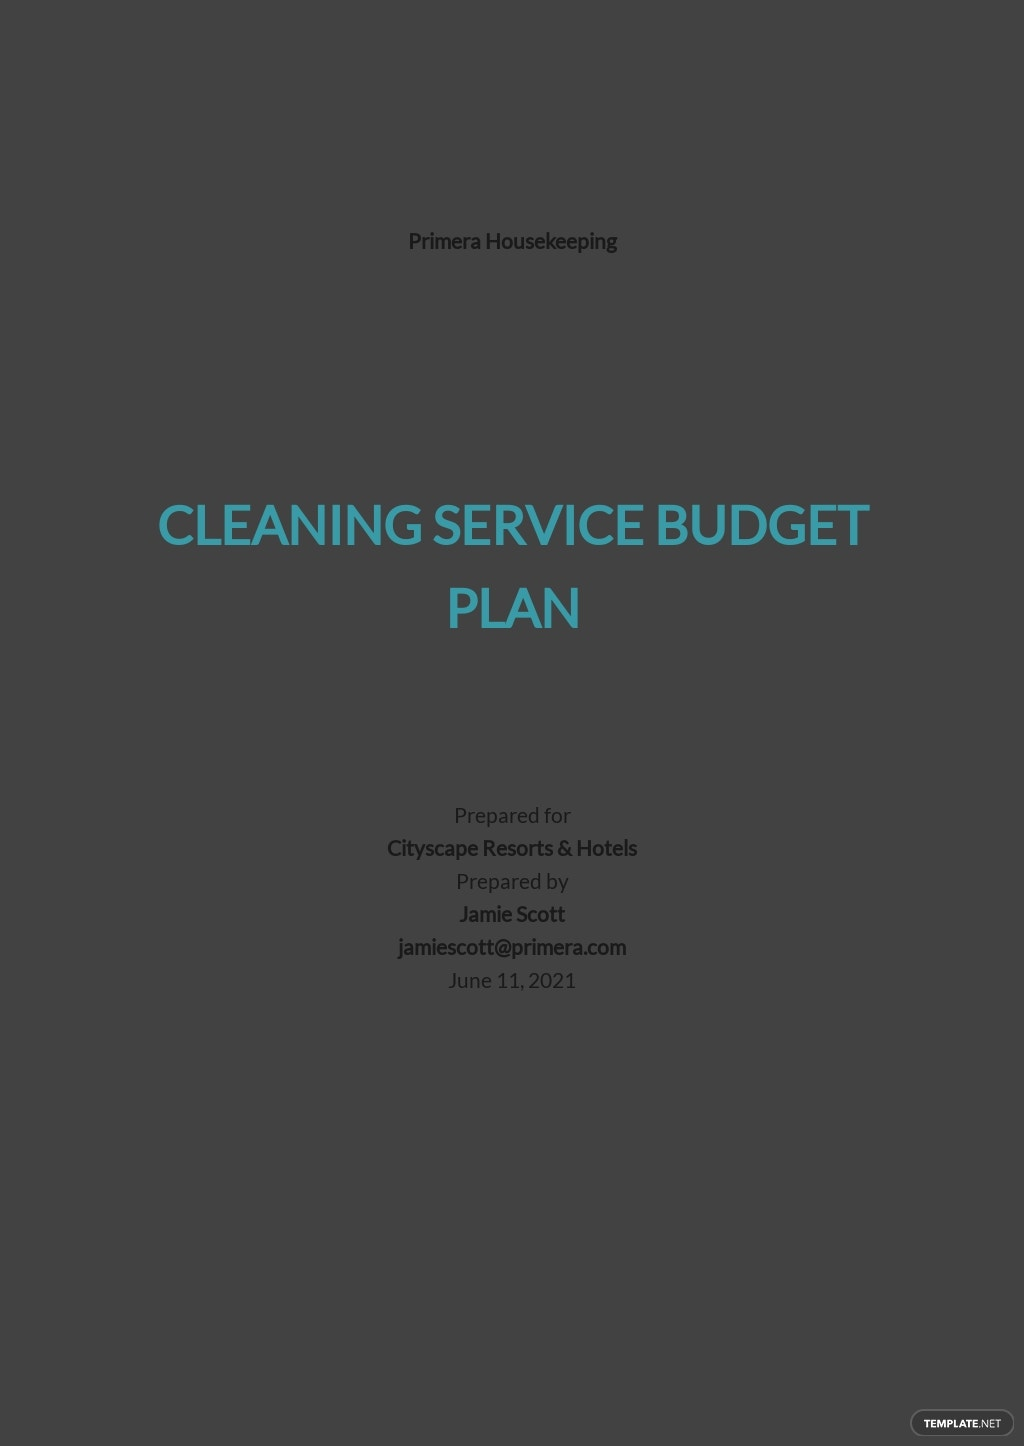 Cleaning Service Budget Plan Template